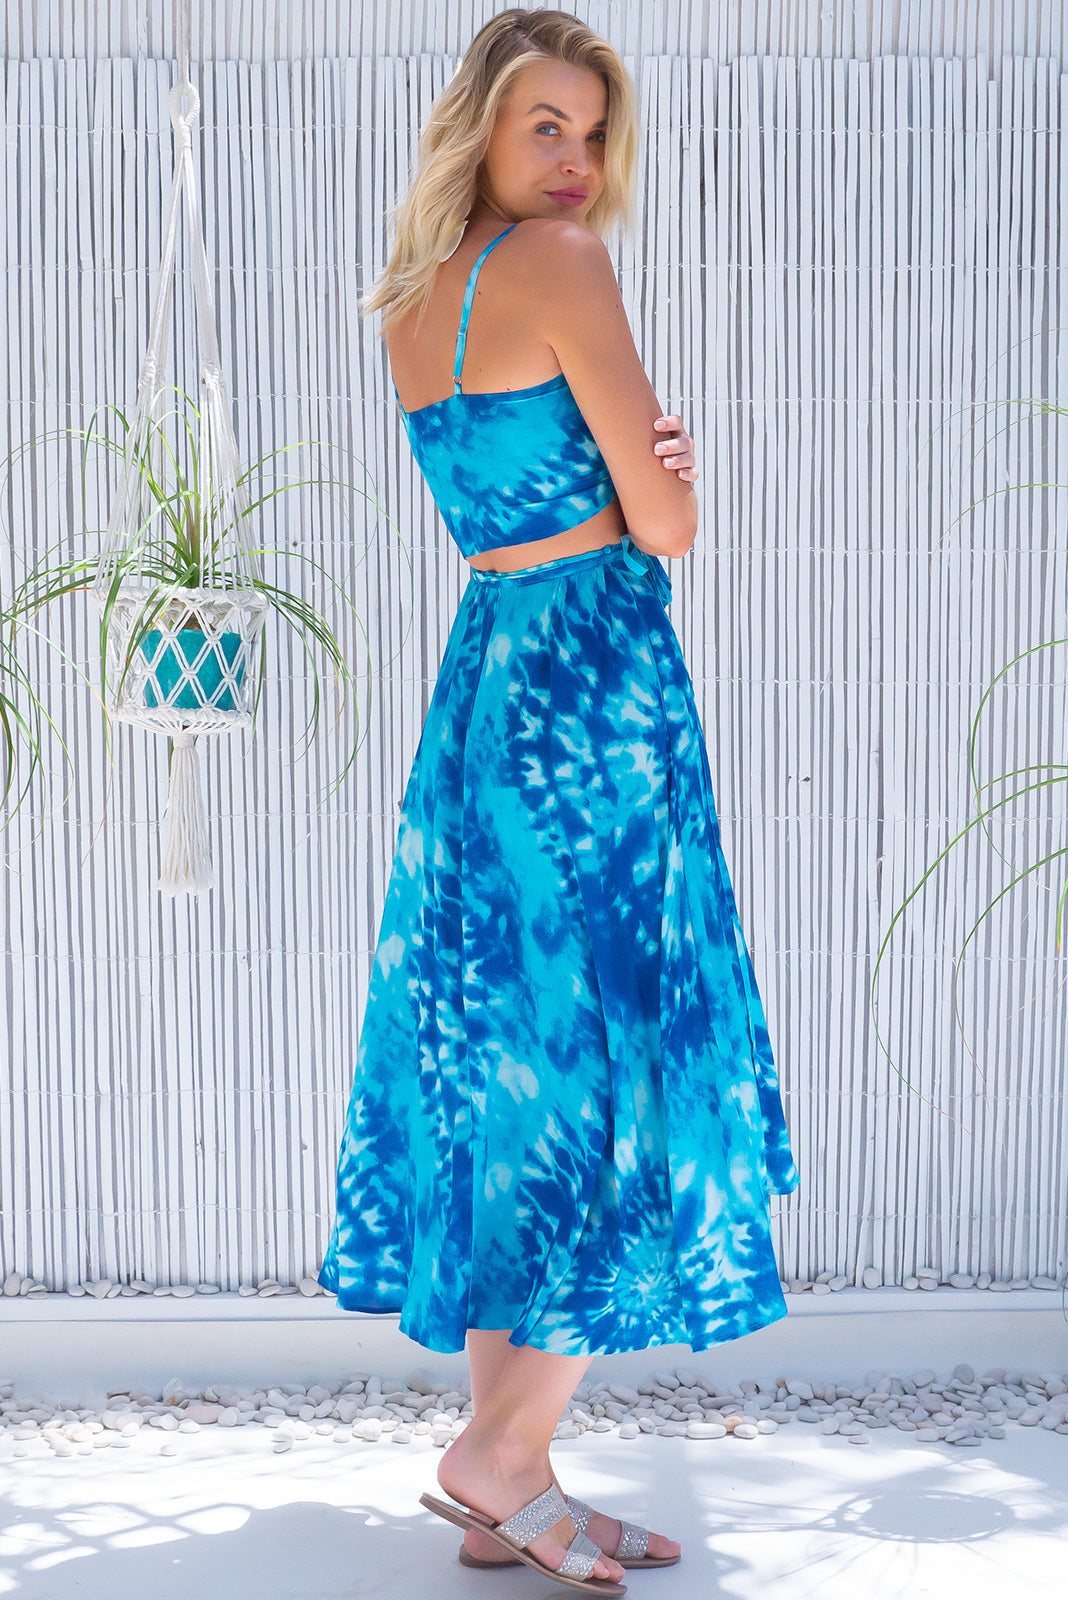 The Toucana Sea Splash Wrap Skirt features functional wrap around design, high/low hemline, elasticated back of waist, side pockets and 100% viscose in blue tie dye print